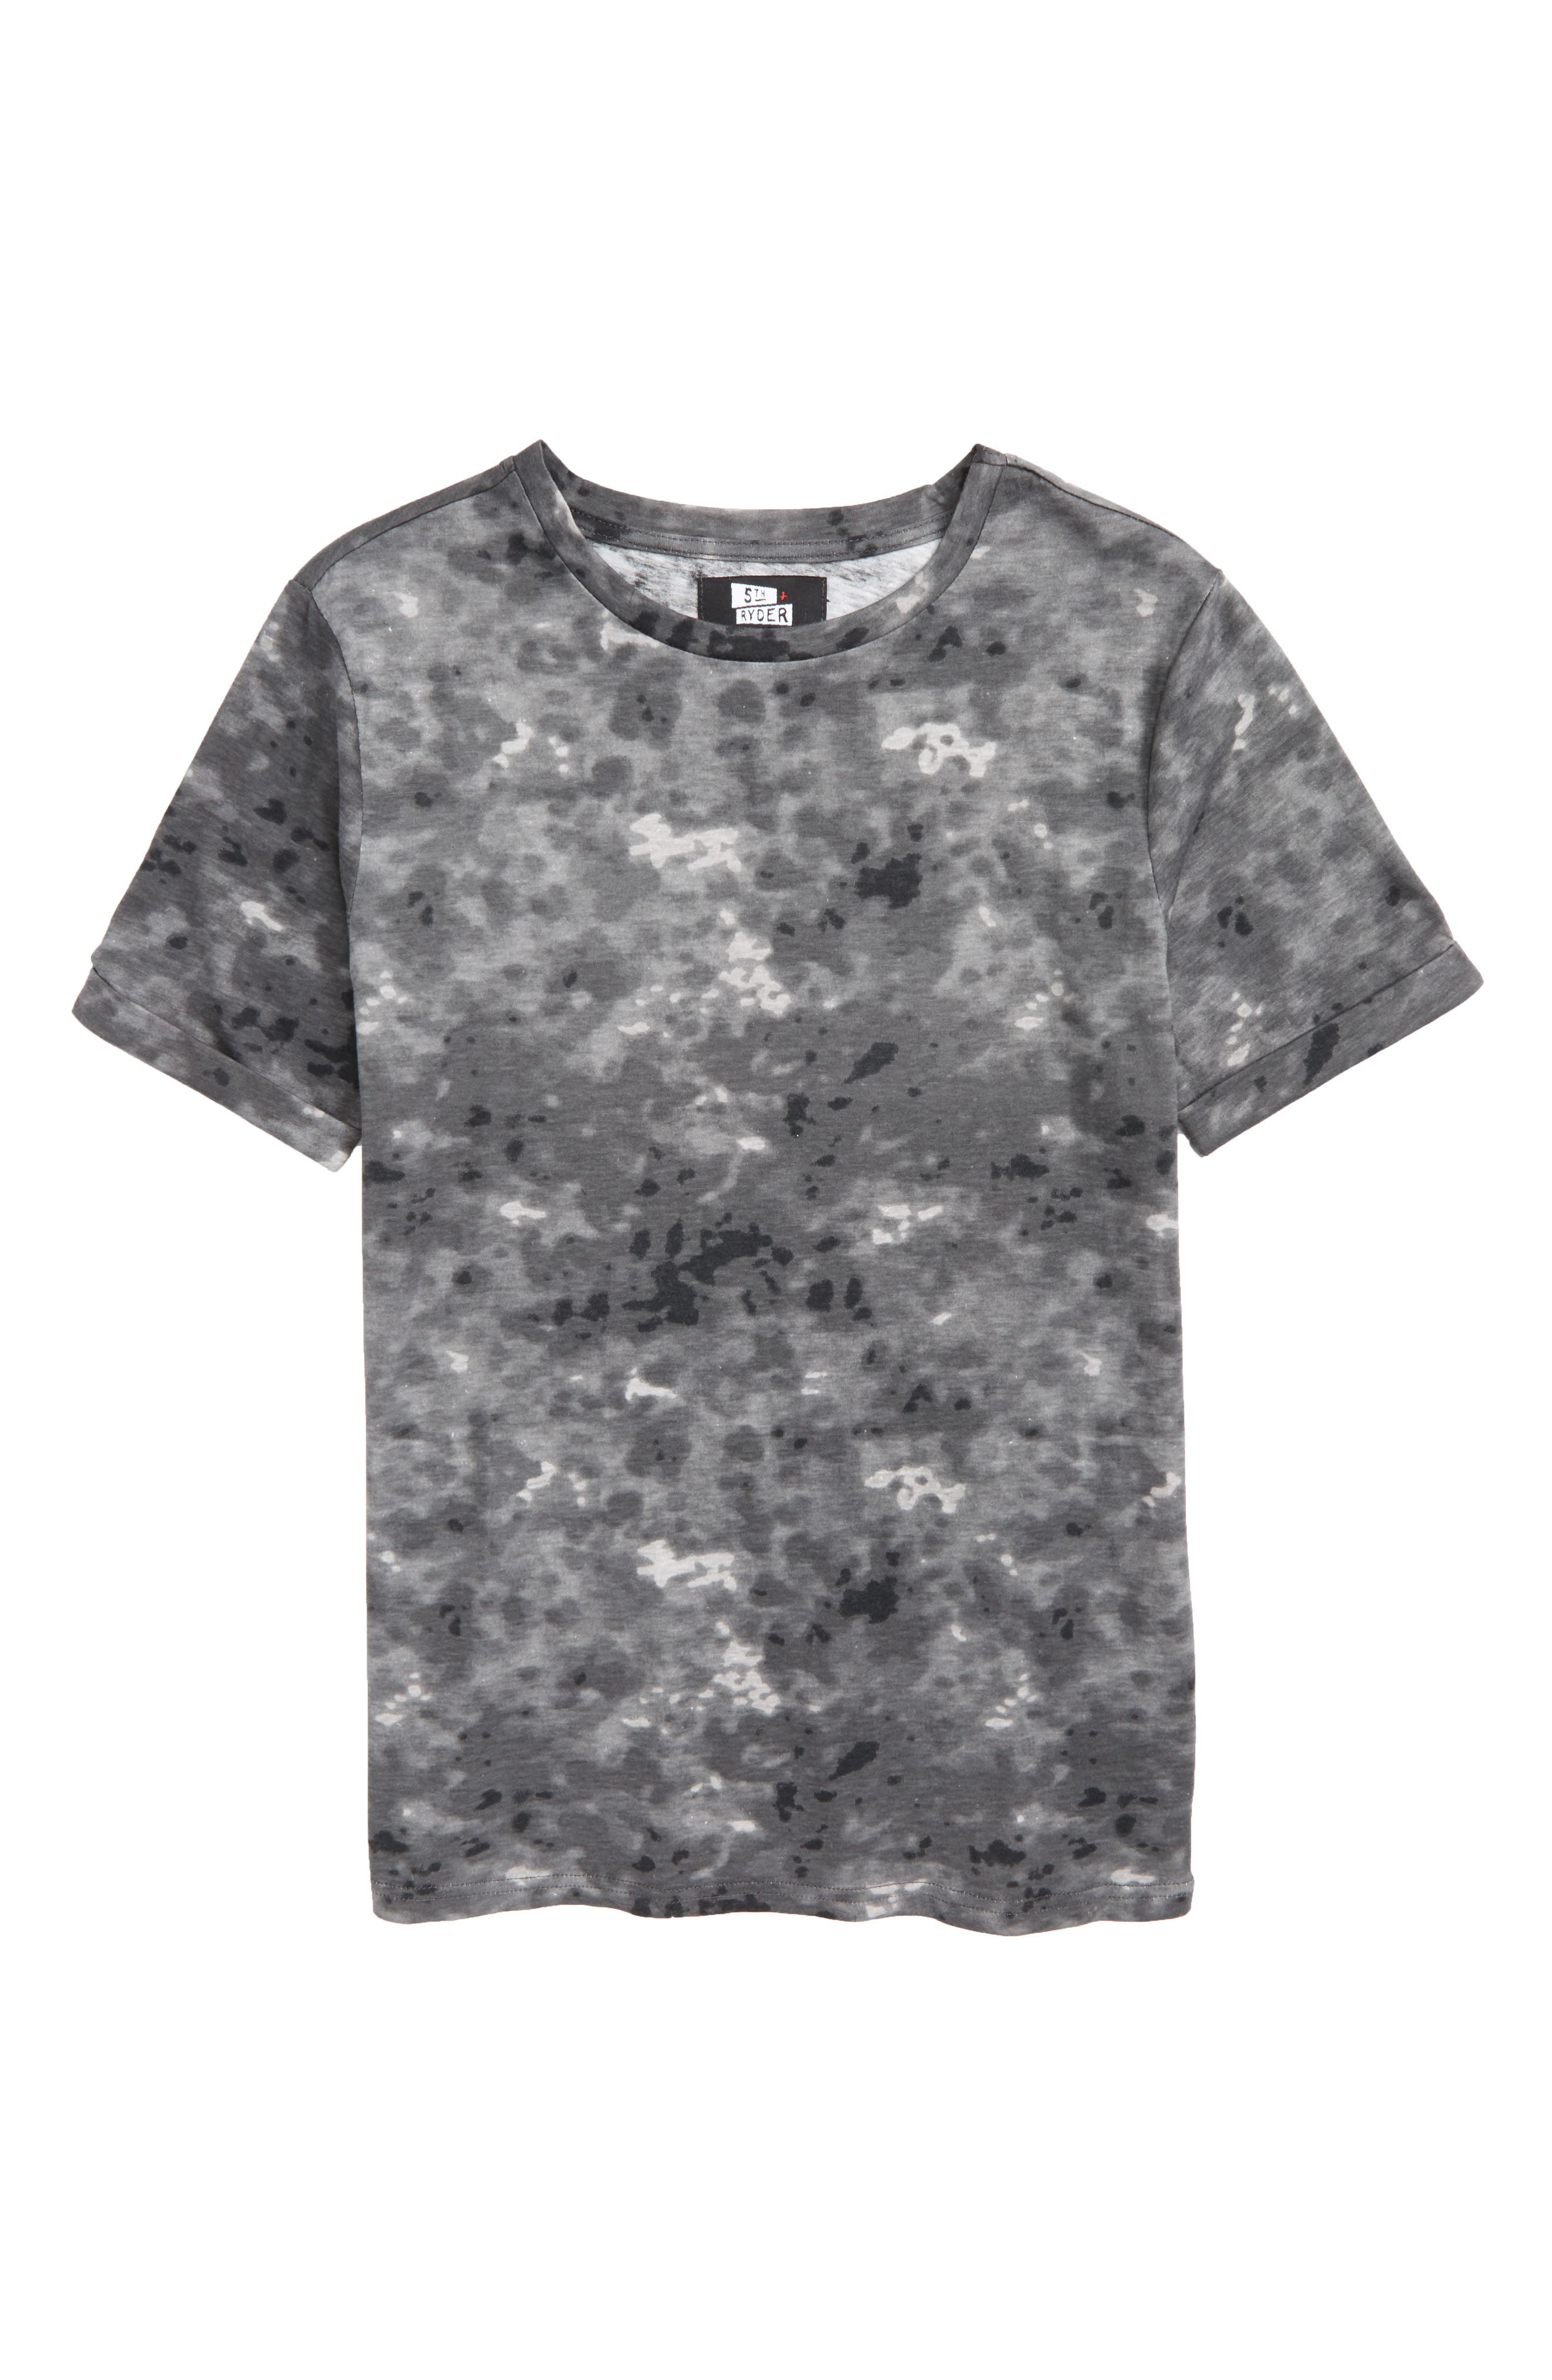 Rolled Cuff T-Shirt,                         Main,                         color, Black Snow Wash Print